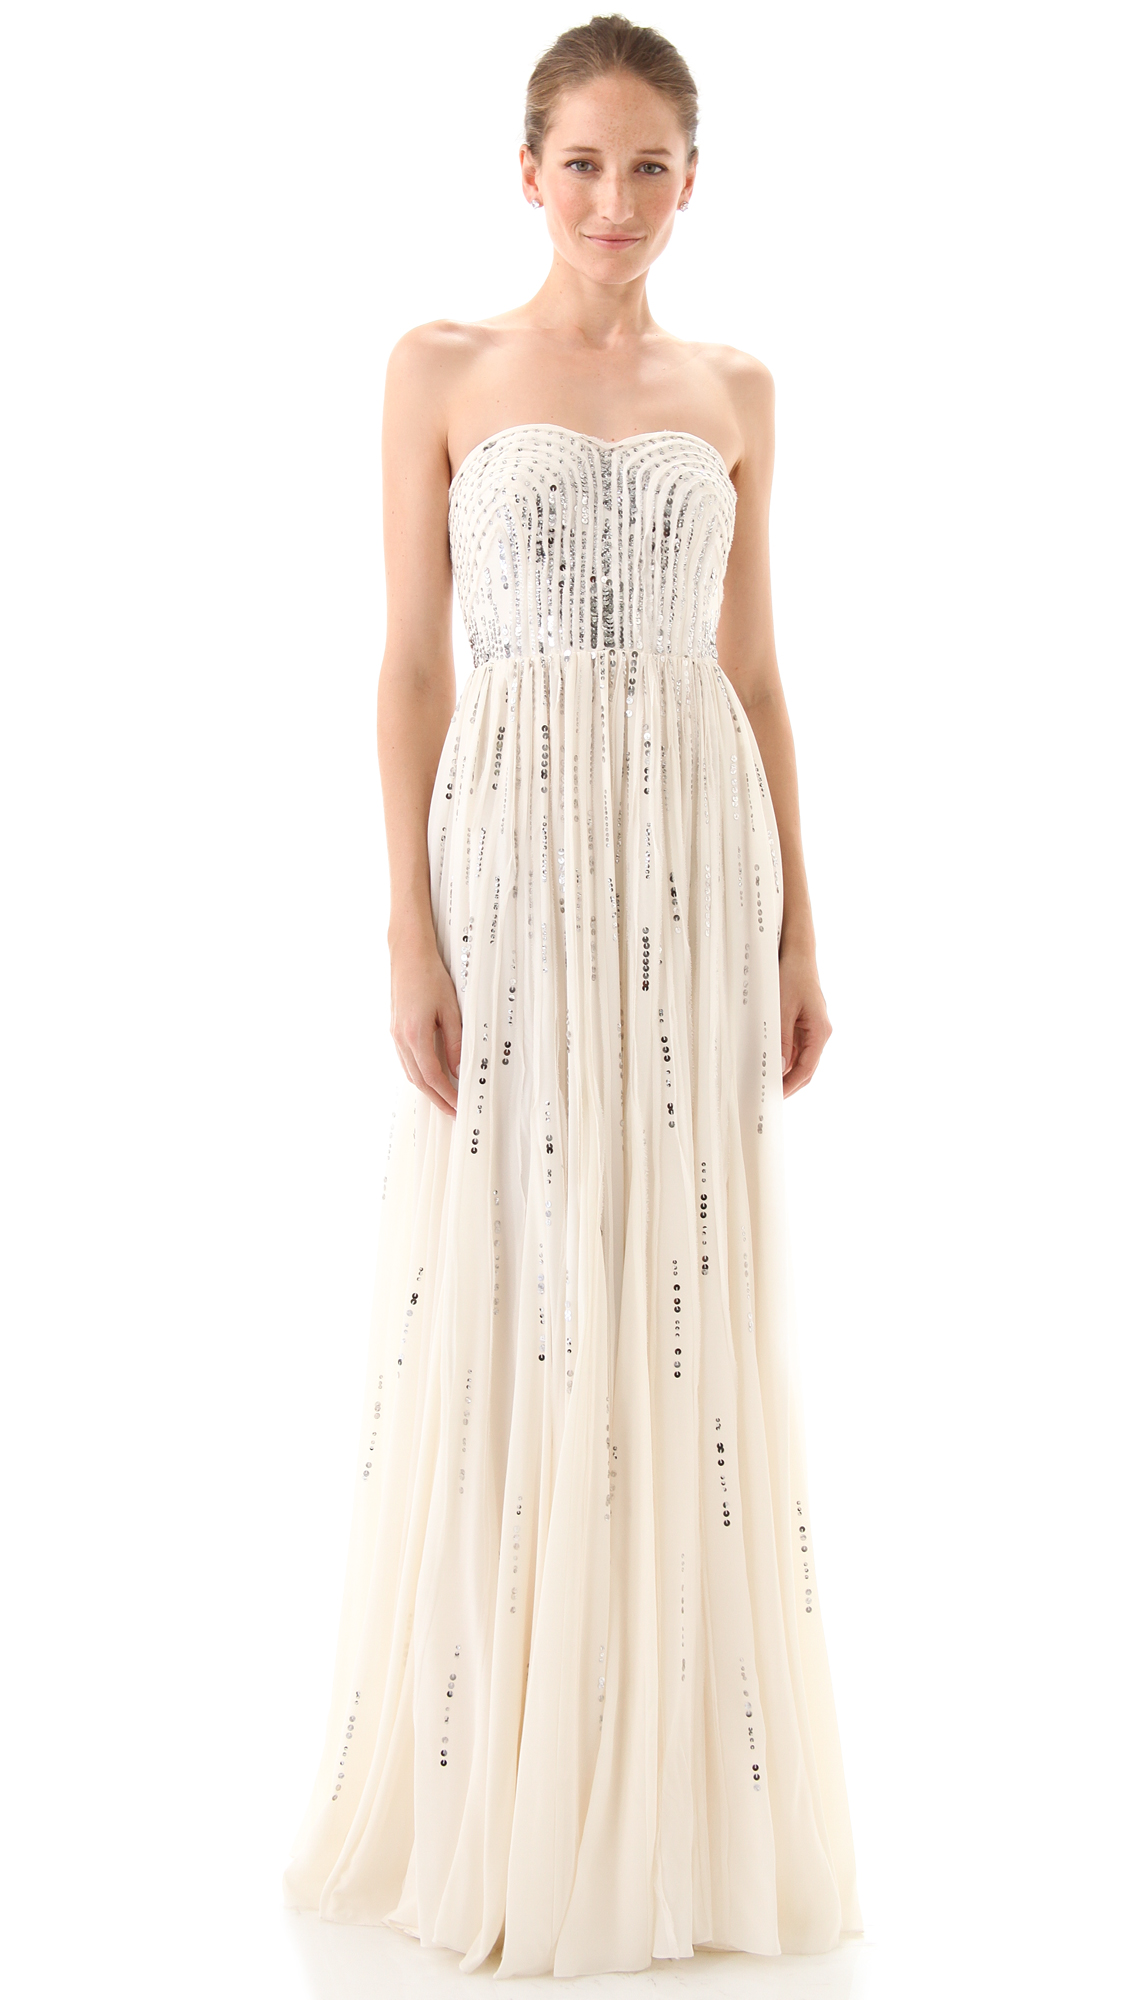 Rebecca Taylor Frayed Strapless Gown - SHOPBOP